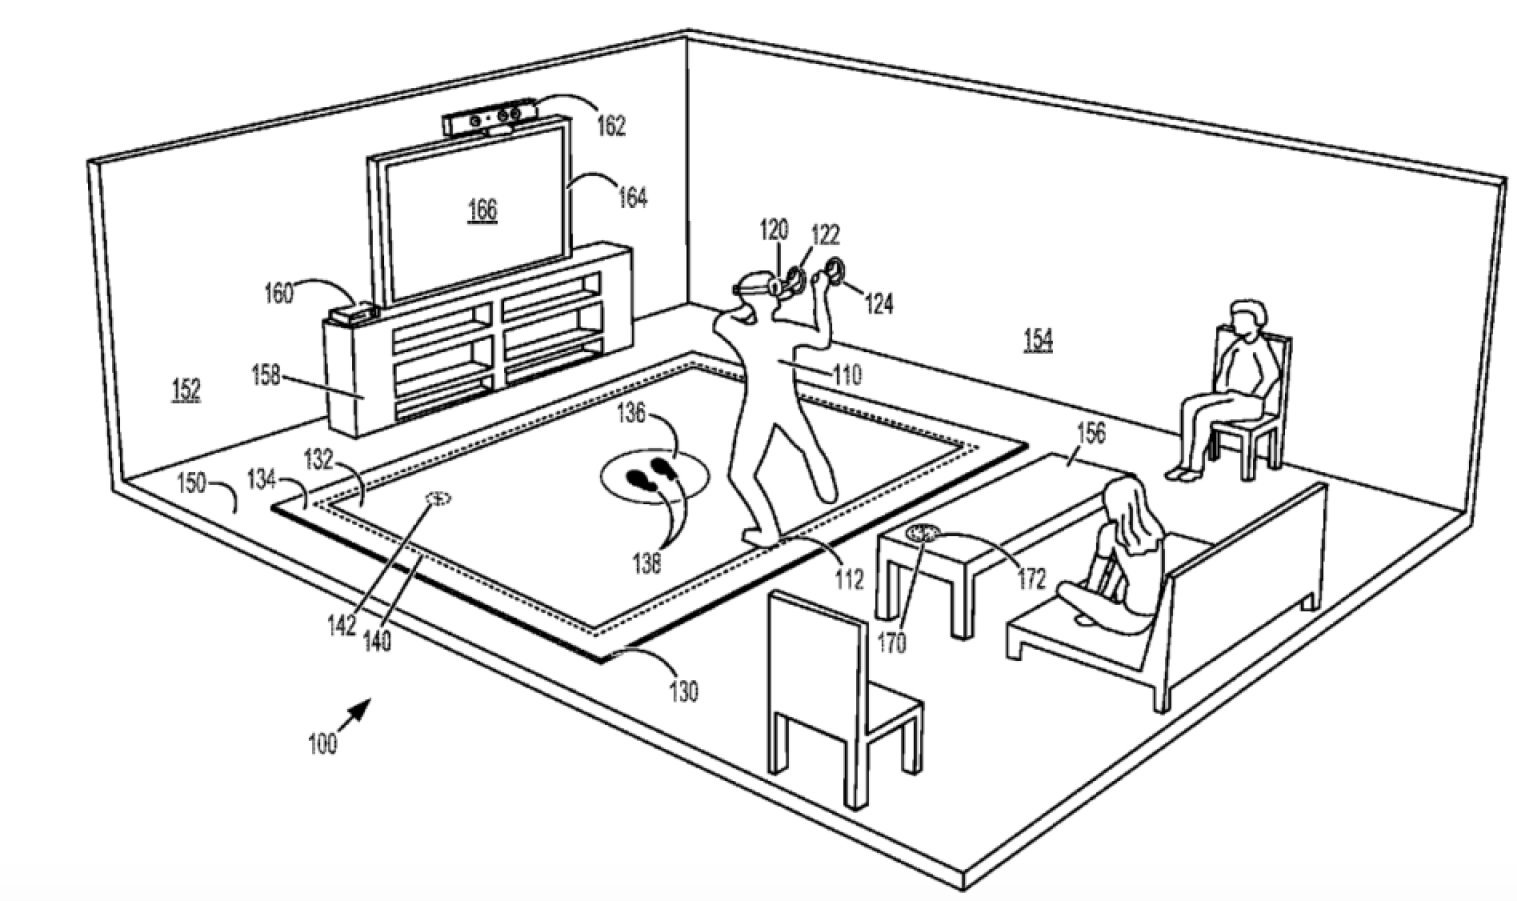 Microsoft patents vibrating carpet for virtual reality